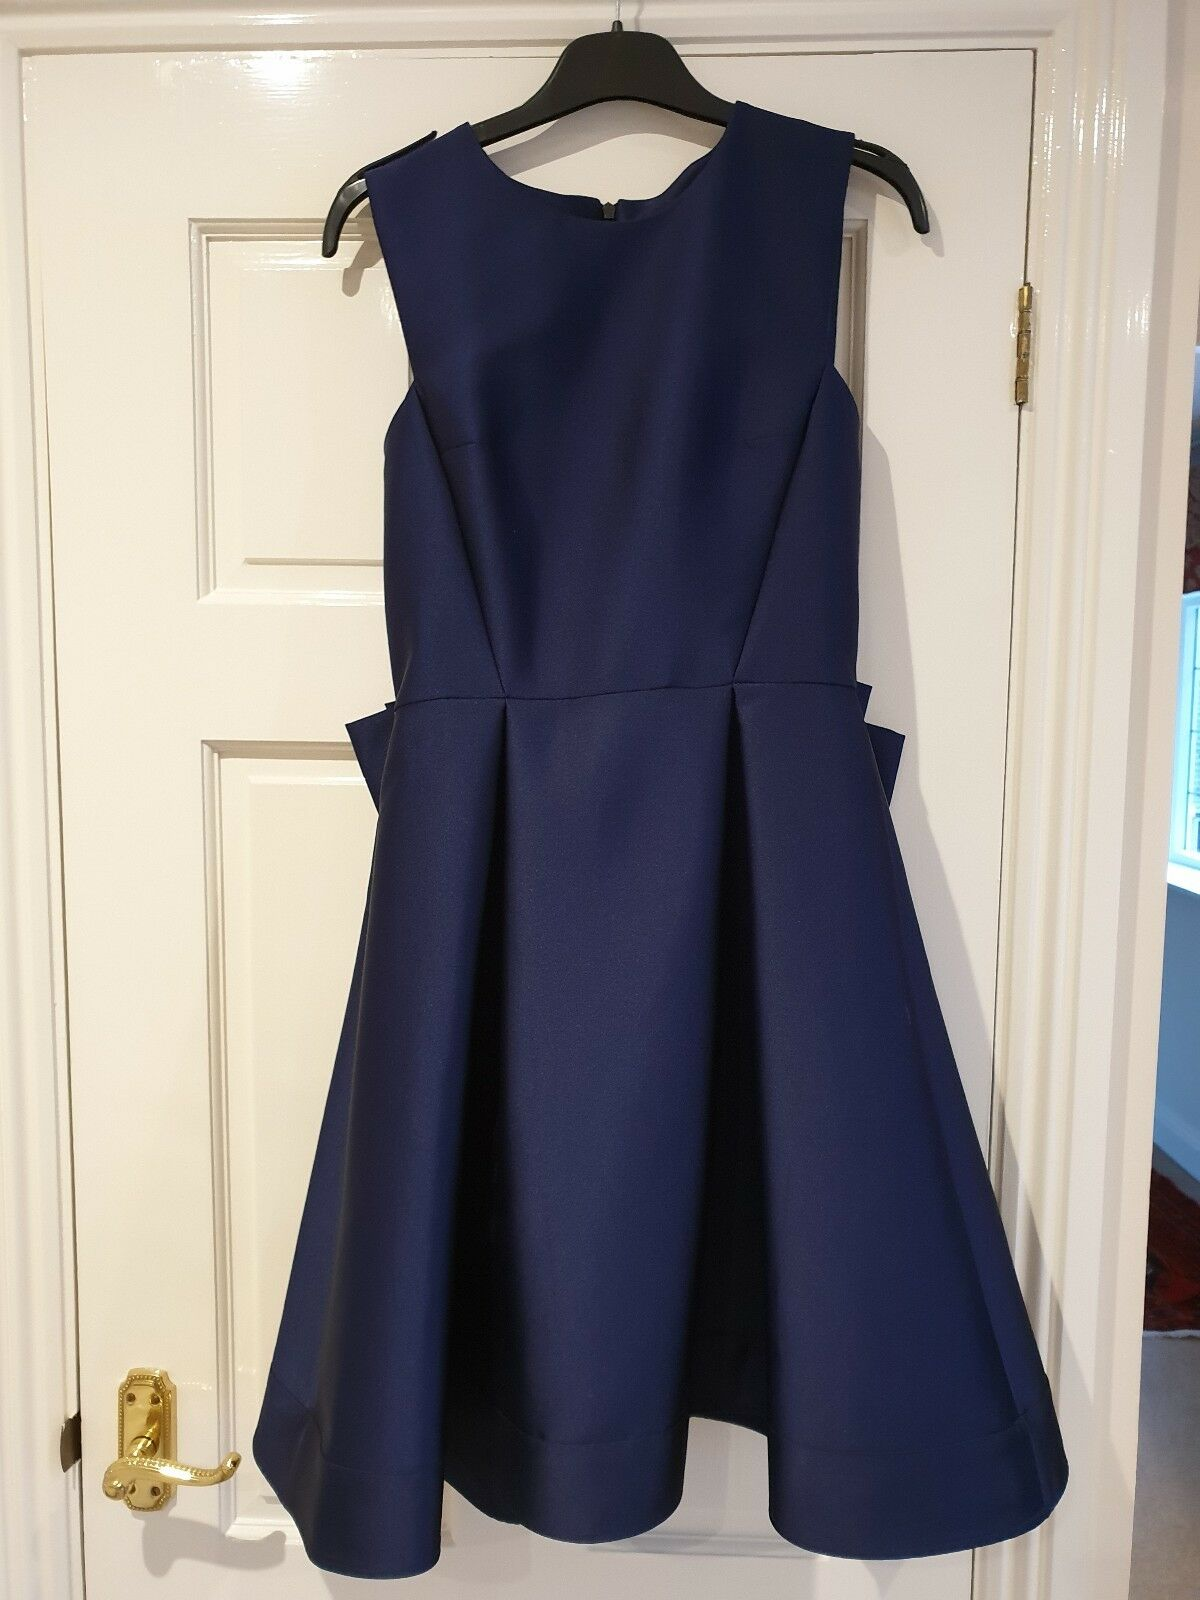 Juliet Satin Sleeveless Dress French Connection Size 8, 8, 8, bluee Prom, Bridesmaid cec14a